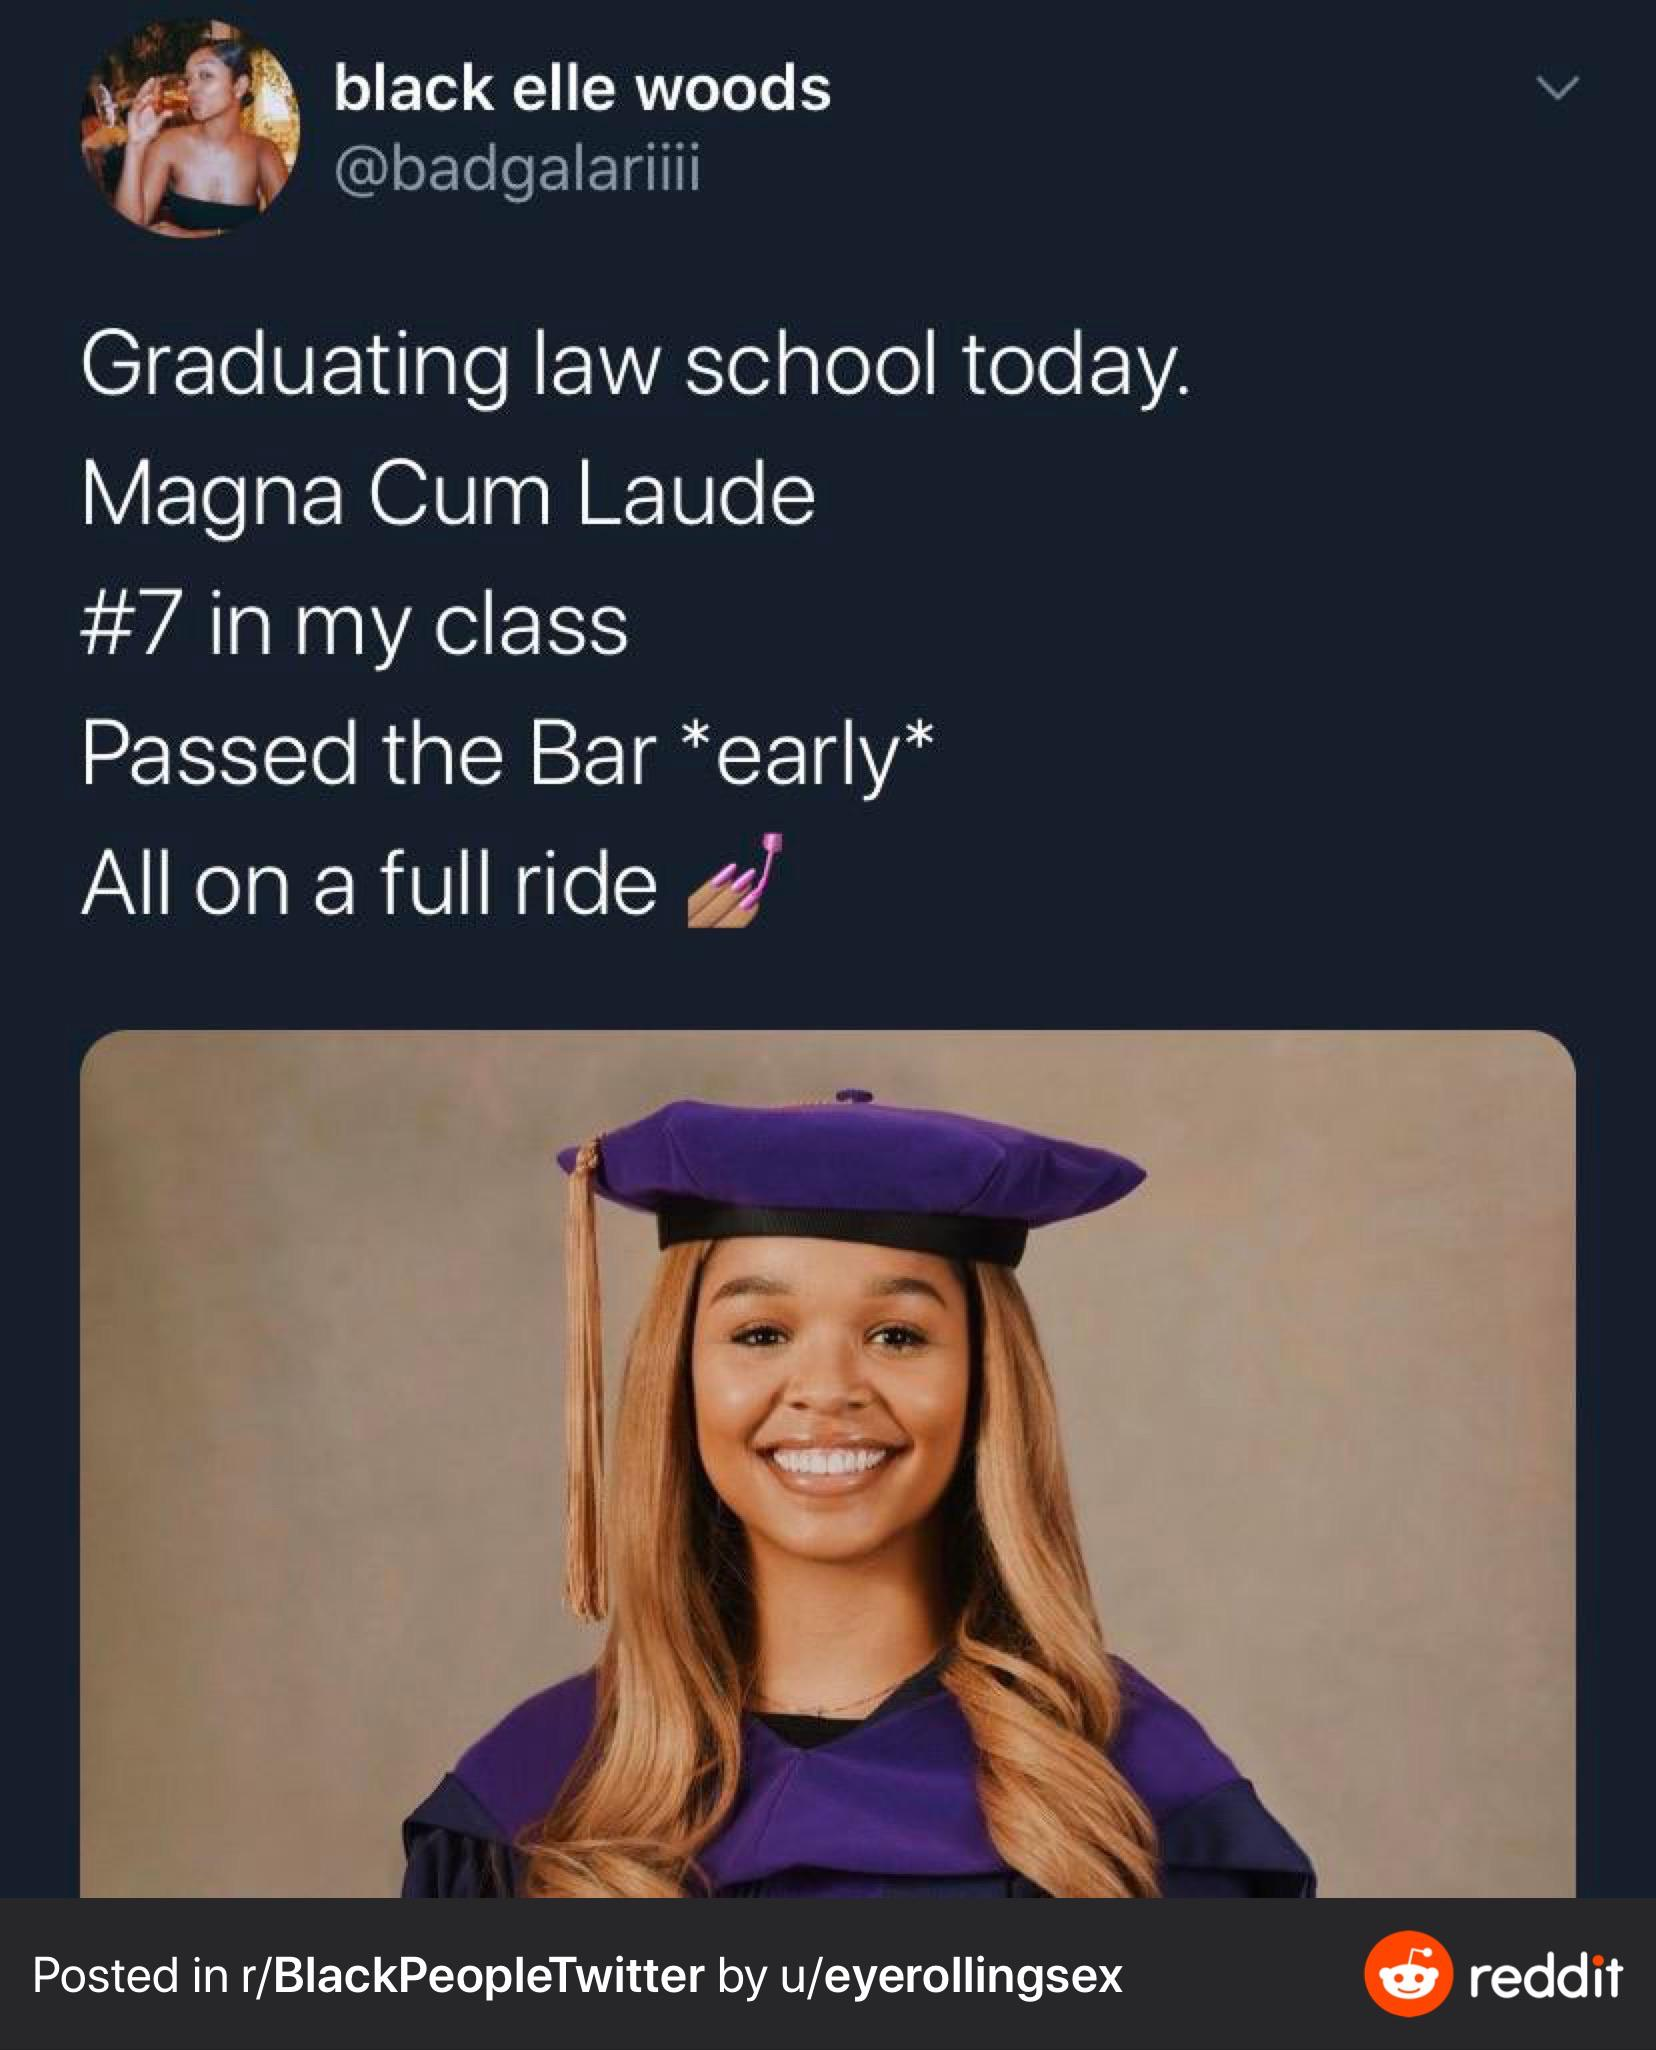 Black, Black Woman Achieving Big Things Ya Love Wholesome Memes Black, Black Woman Achieving Big Things Ya Love text: black elle woods @badgalariiii Graduating law school today. Magna Cum Laude #7 in my class Passed the Bar *early* All on a full ride 4/ Posted in r/BIackPeopIeTwitter by u/eyerollingsex reddit